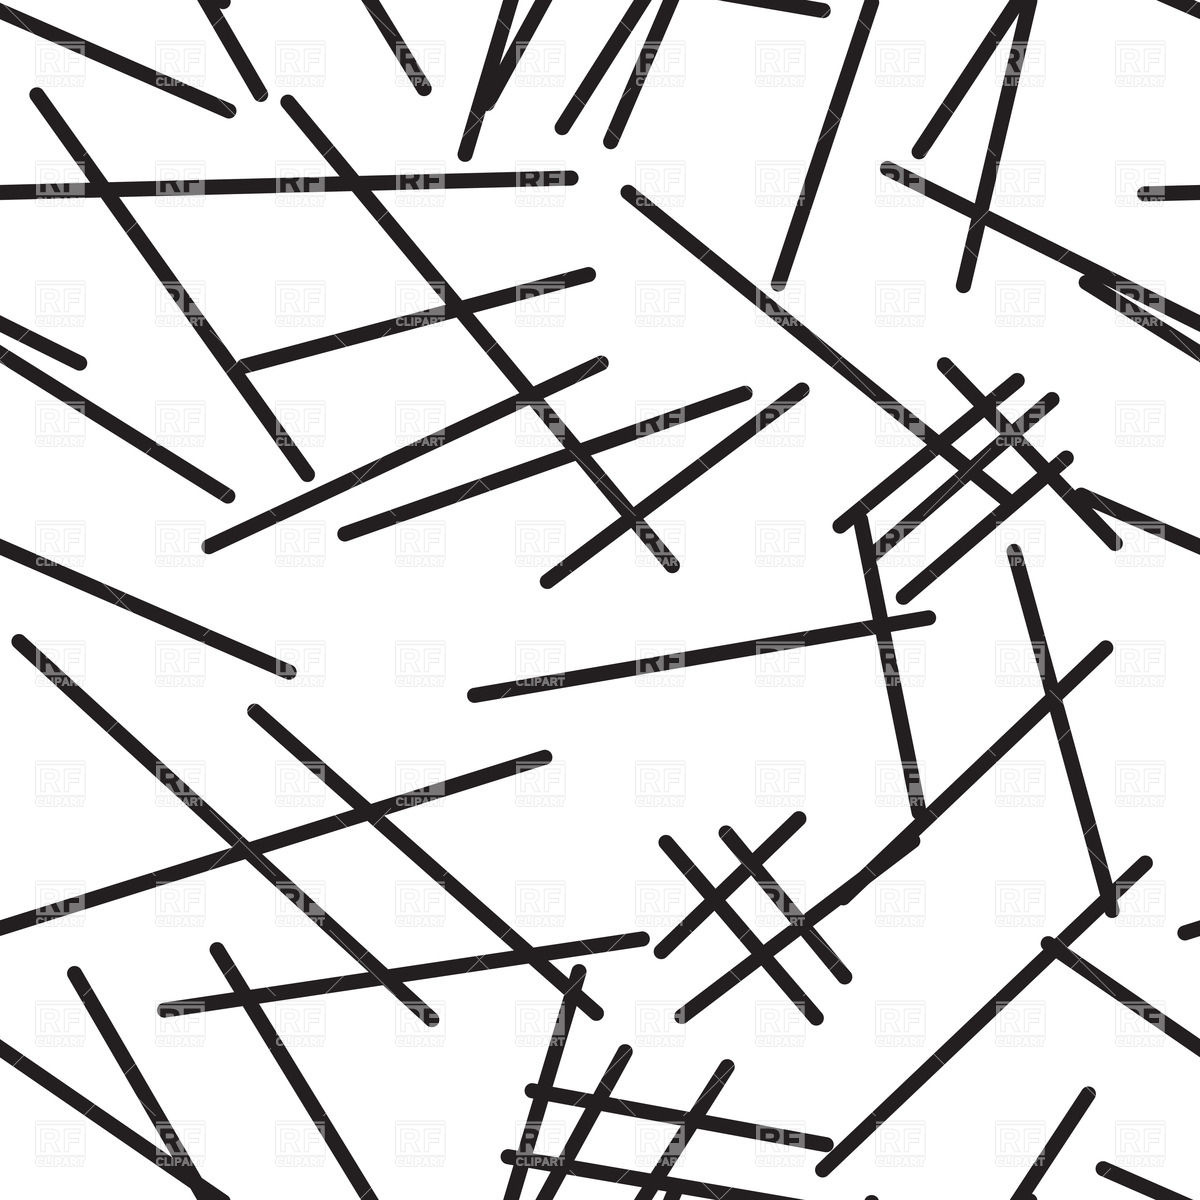 1200x1200 Abstract Black And White Background With Lines Vector Image